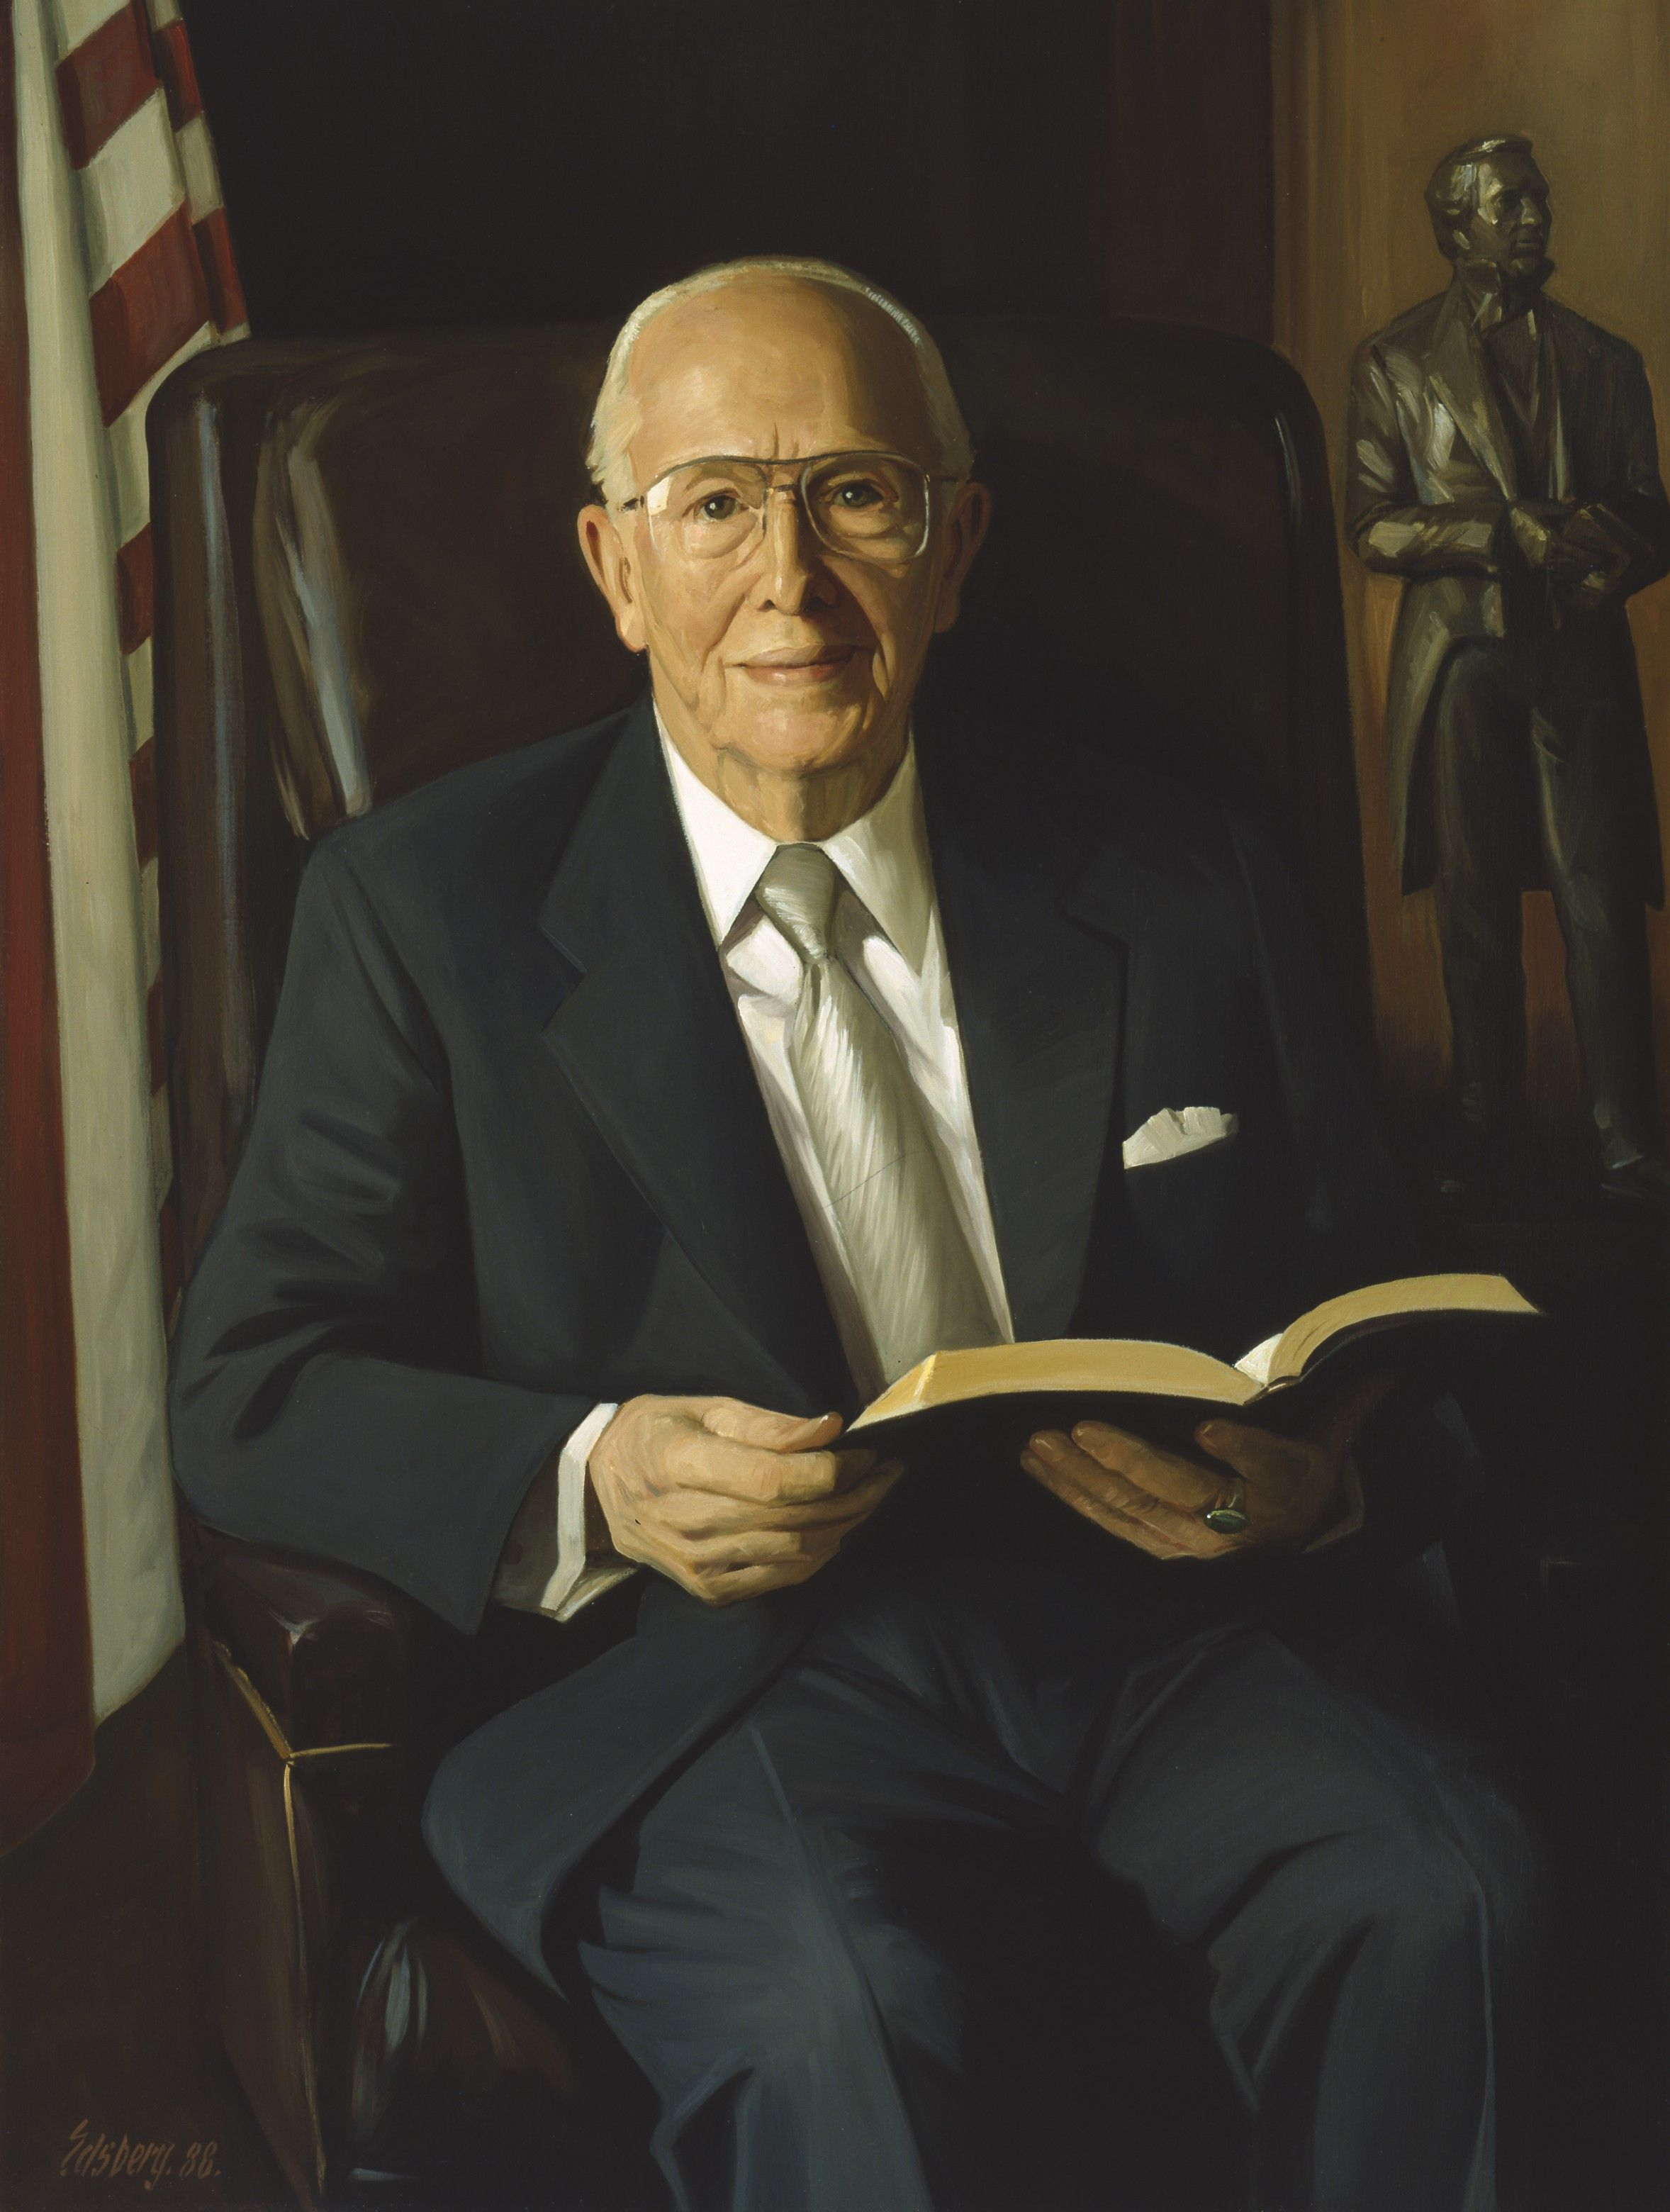 A portrait of Ezra Taft Benson, who was the 13th President of the Church from 1985 to 1994; painted by Knud Edsberg.